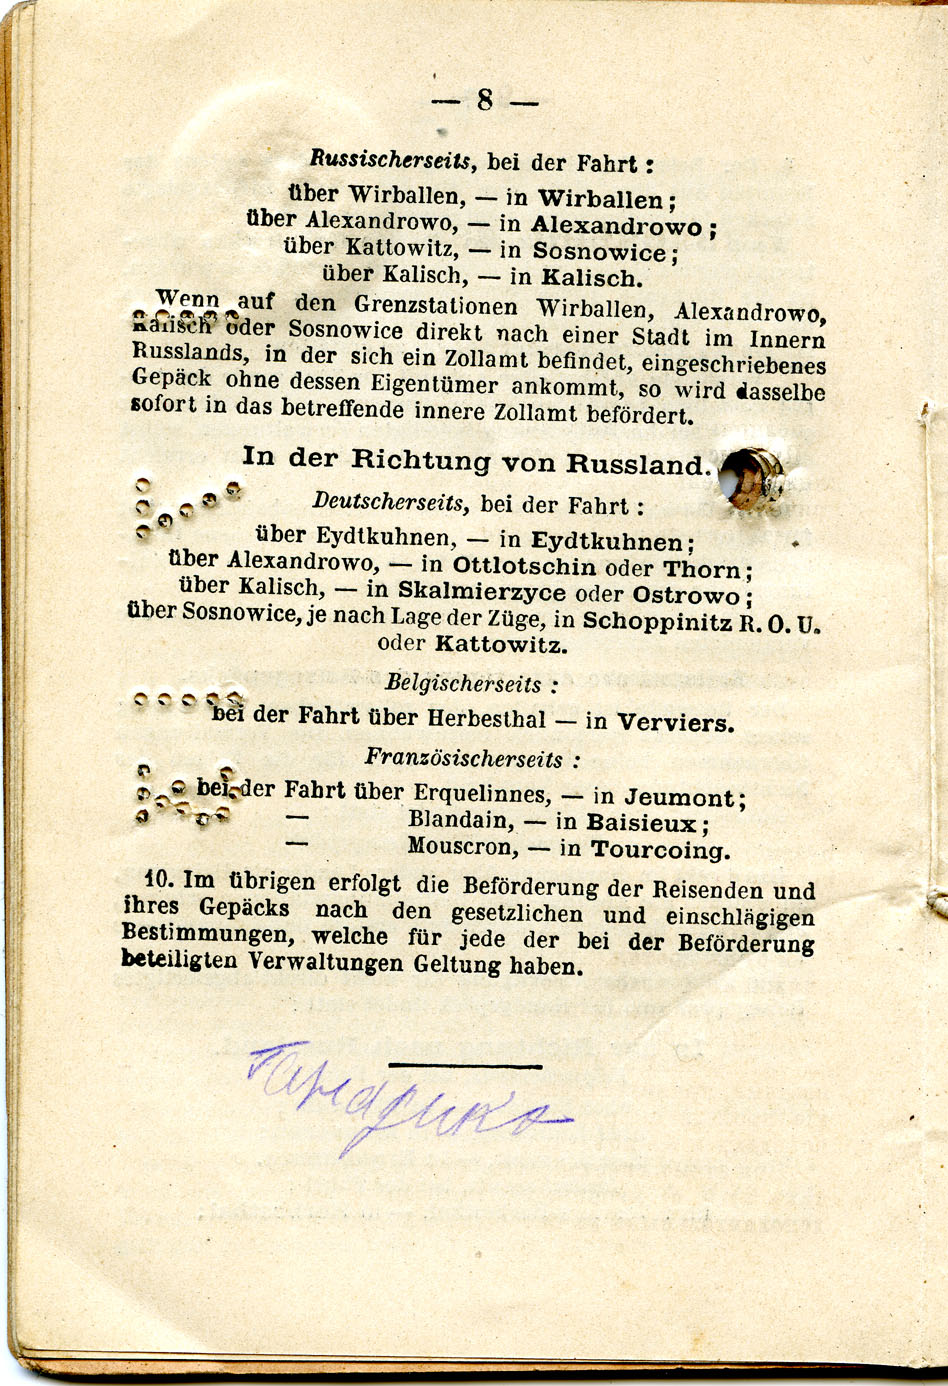 Polya's Train Ticket Paris to Alexandrowo 1913 p22